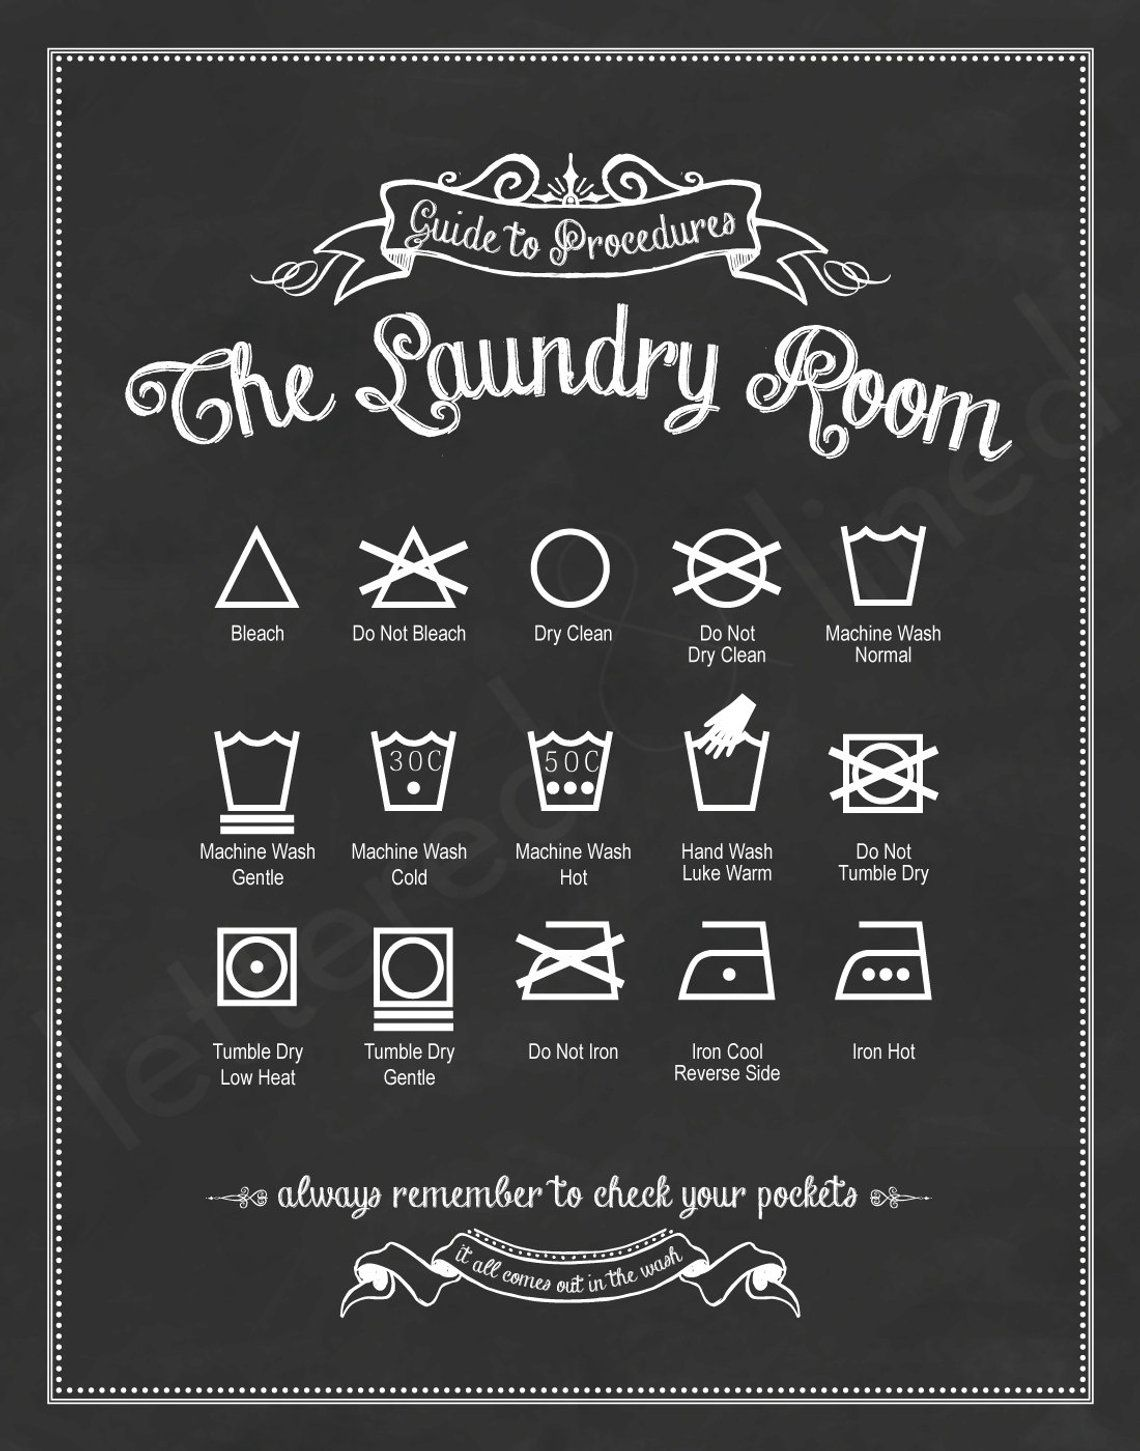 Original Guide To Procedures The Laundry Room Print Laundry